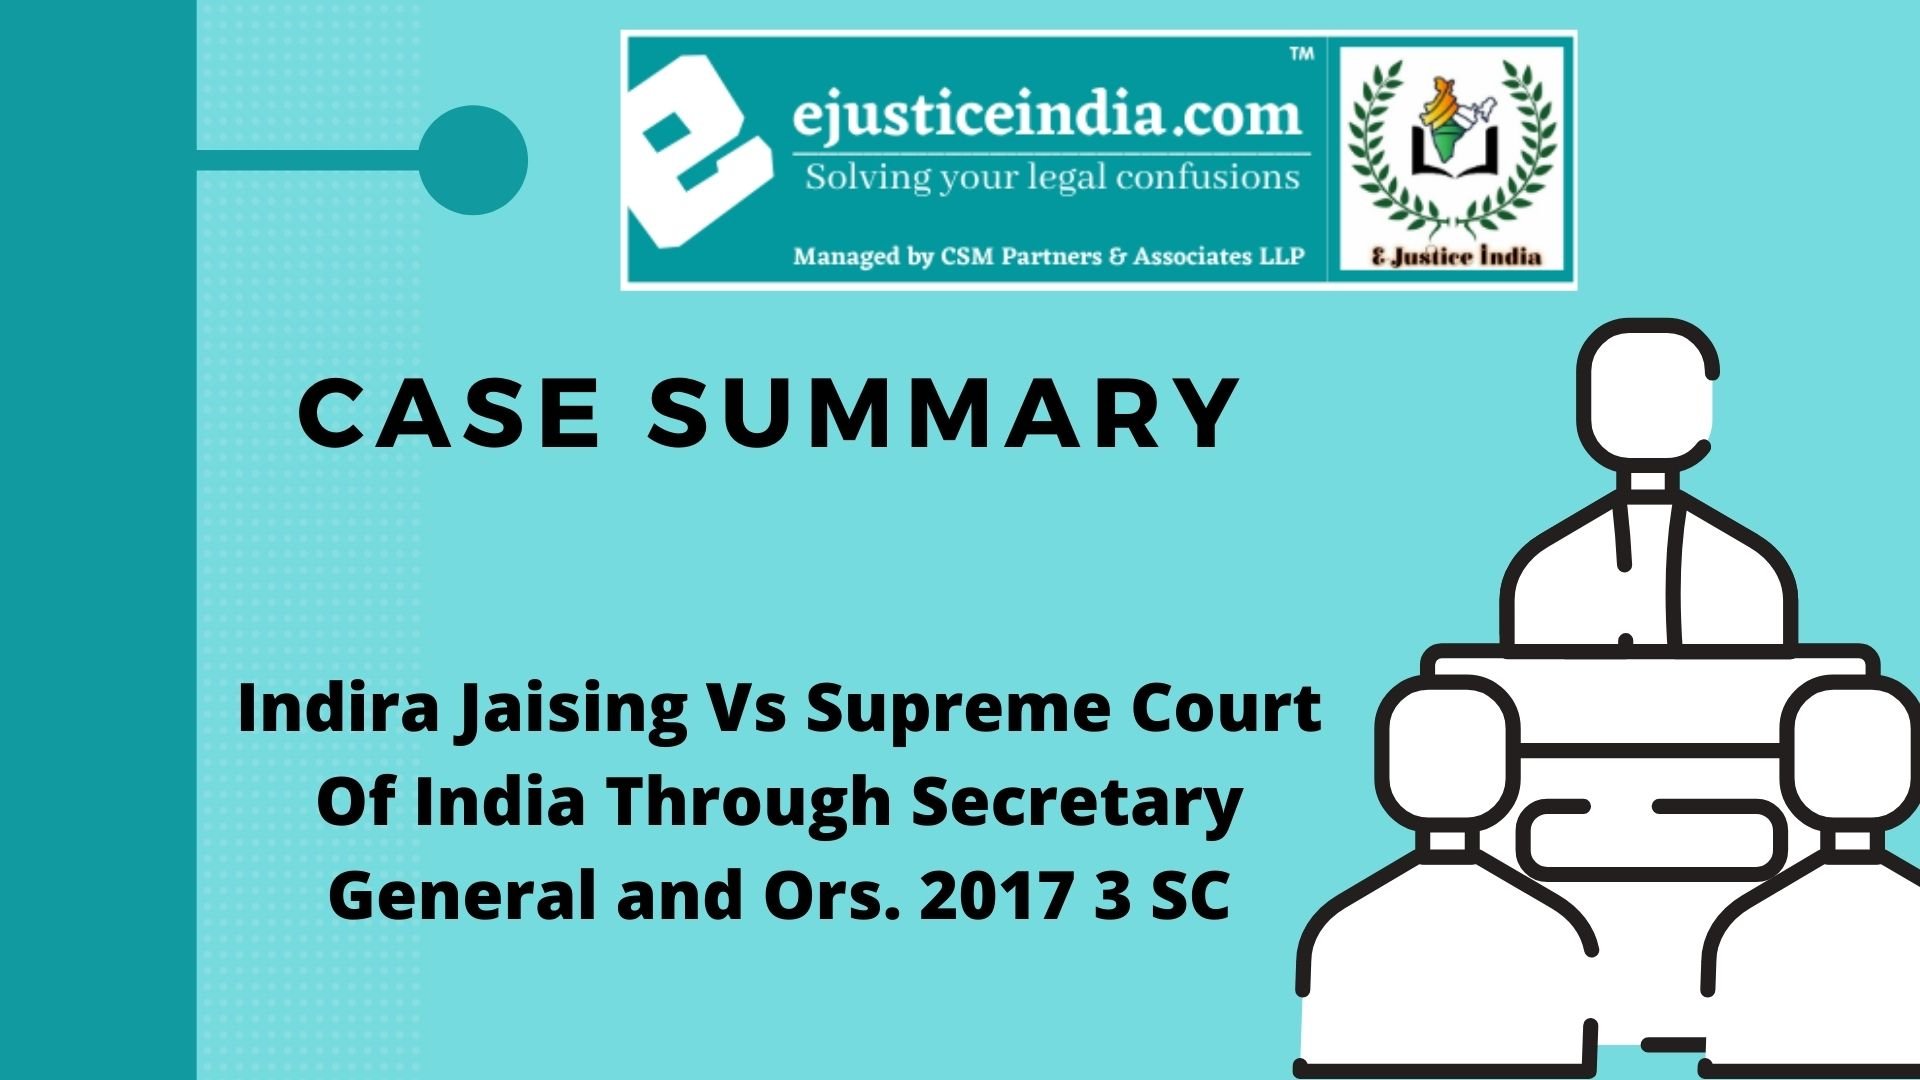 Indira Jaising Vs Supreme Court Of India Through Secretary General and Ors. 2017 3 SC